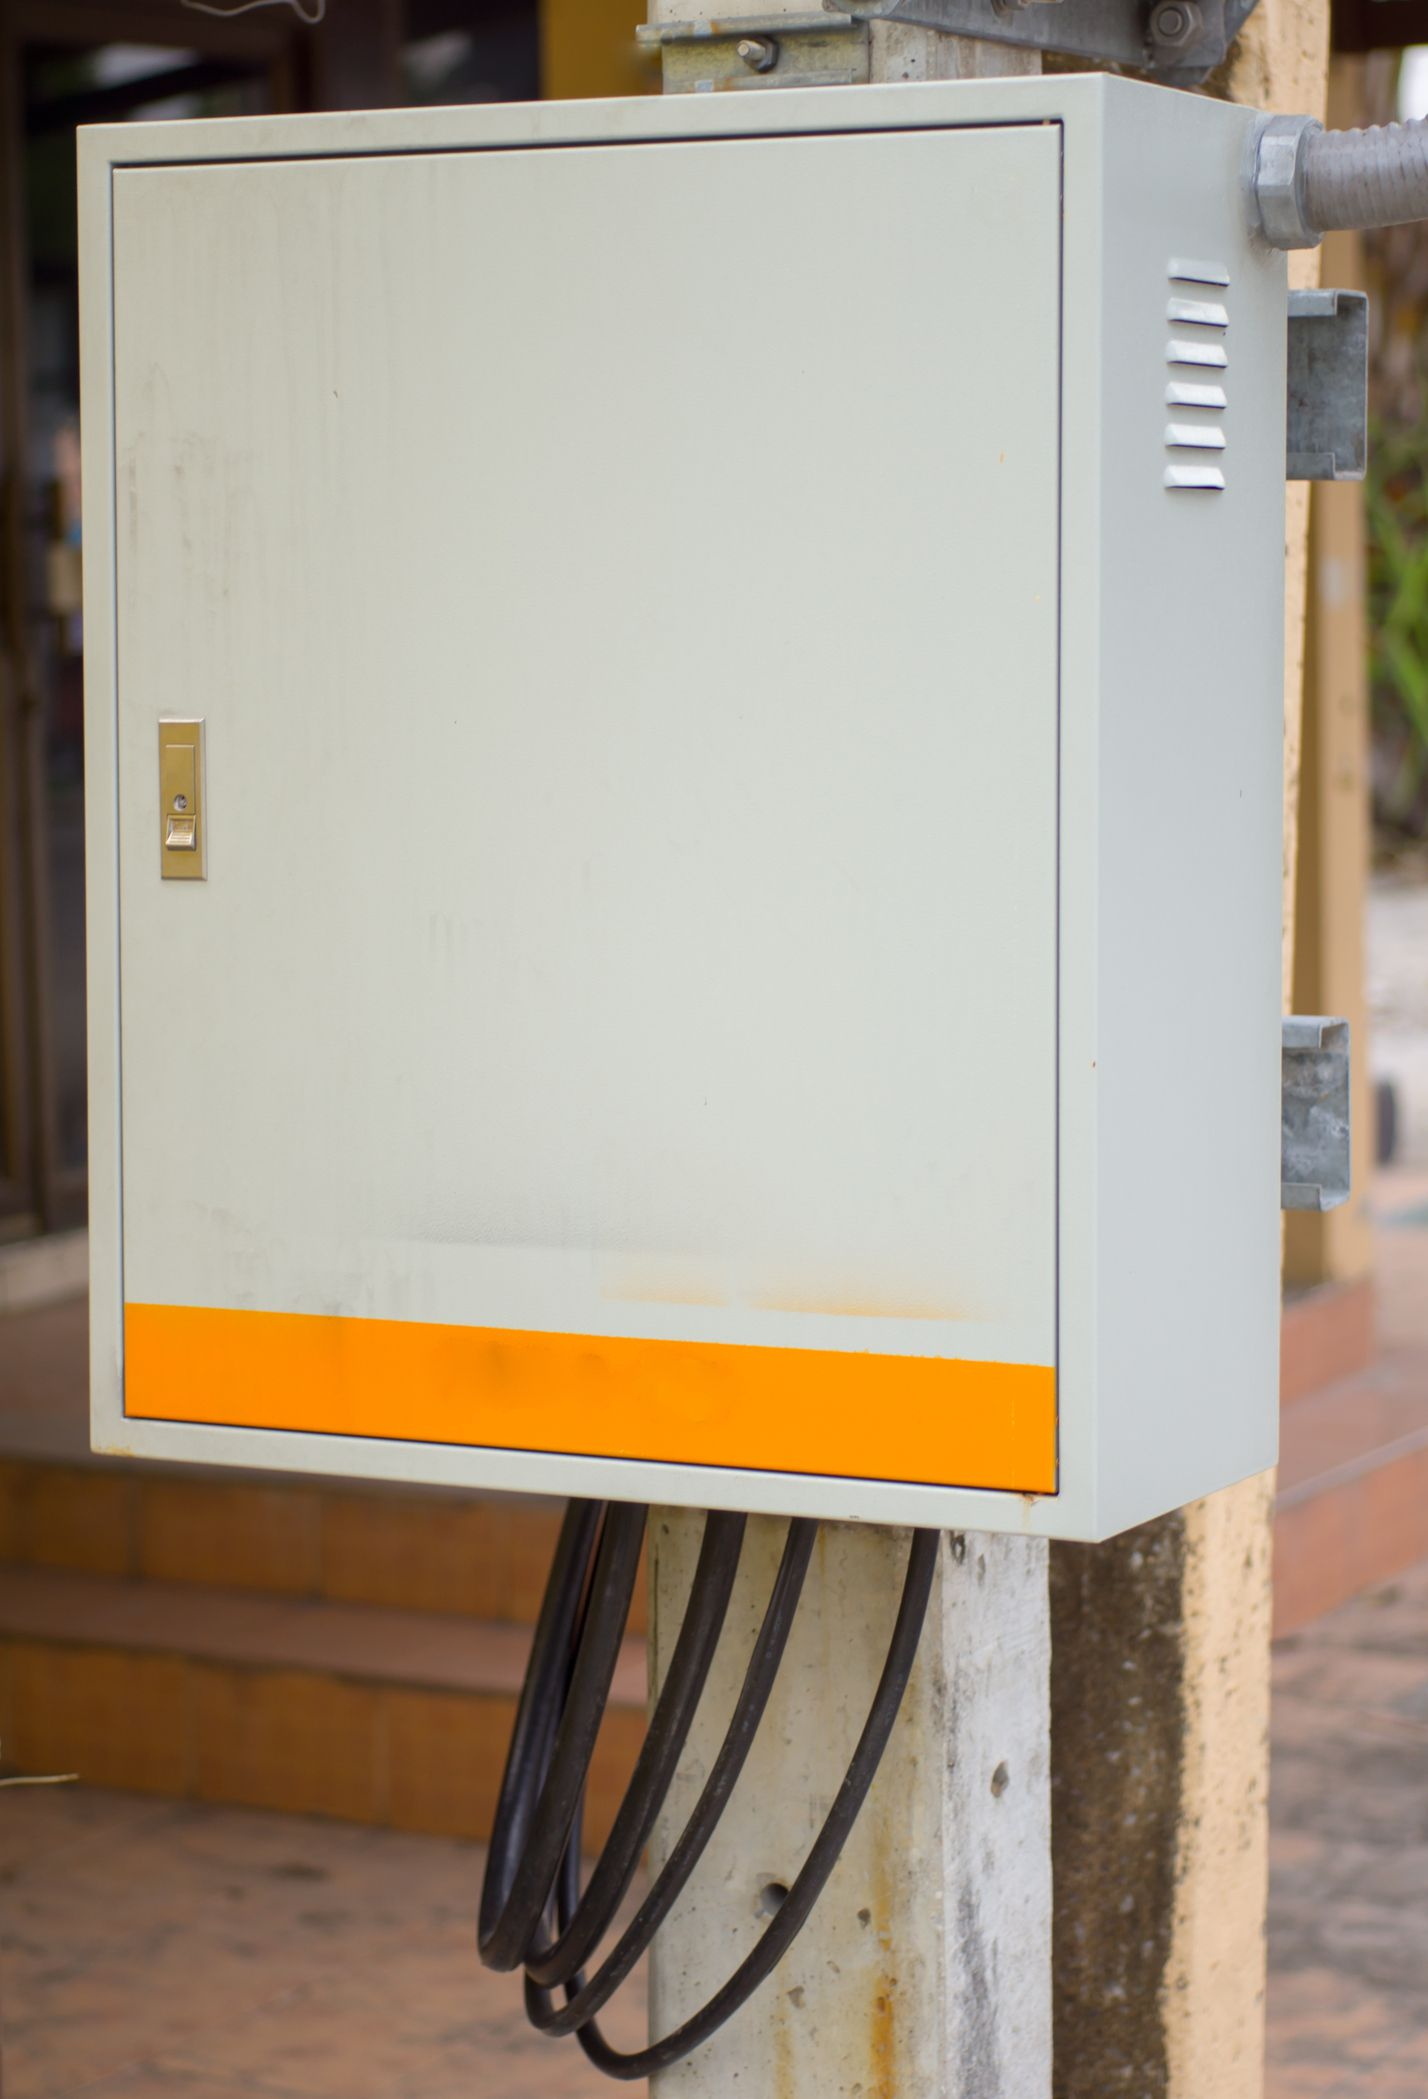 Electrical Boxes For Weatherproof Installations